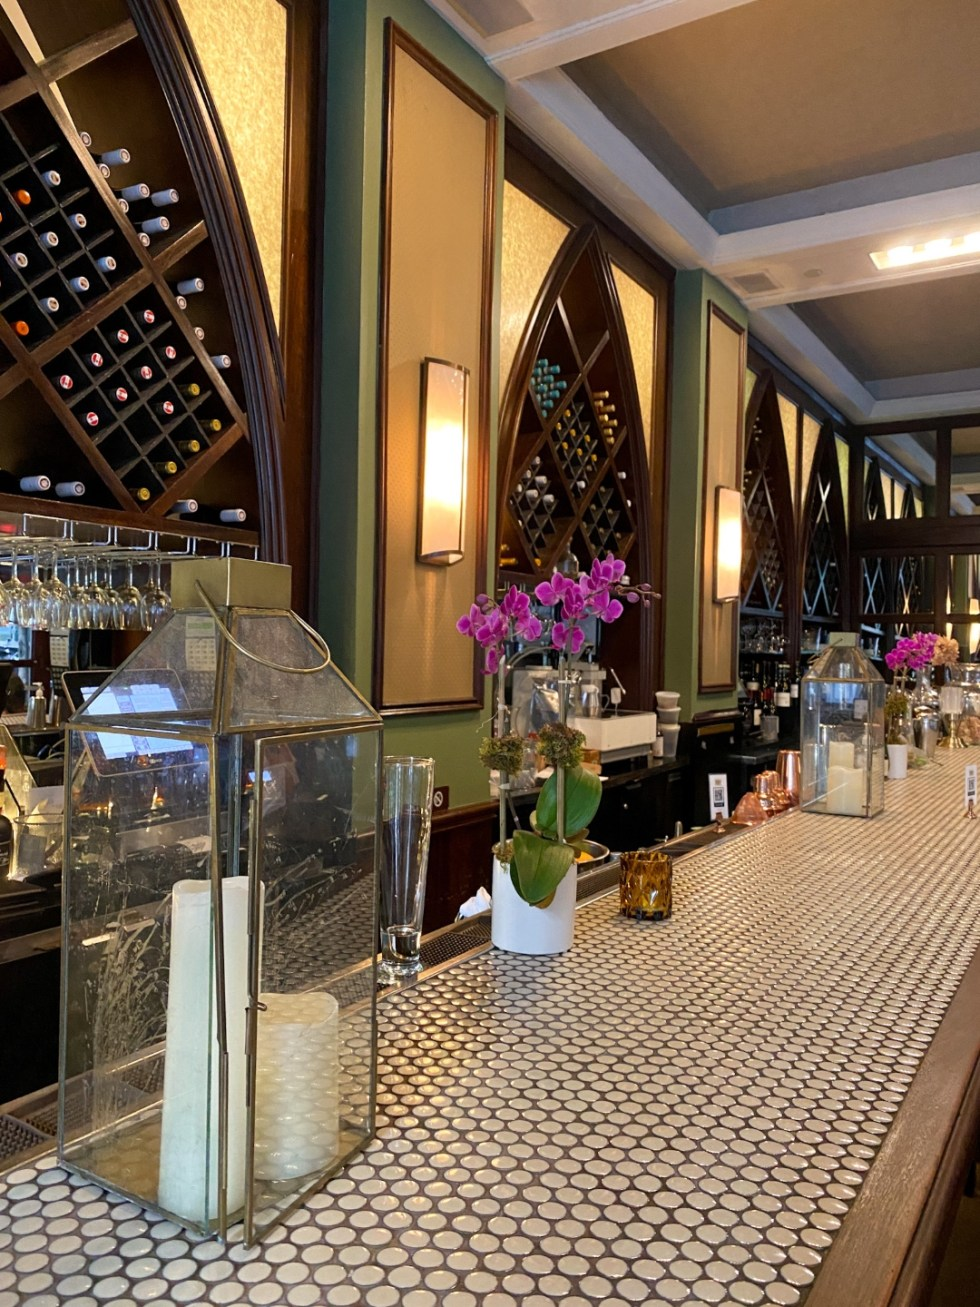 NYC Summer Weekend: Things to Do in NYC in the Summer - I'm Fixin' To - @imfixintoblog   NYC Summer Weekend by popular NC travel blog, I'm Fixin' To: image of the Madison and Vine restaurant.